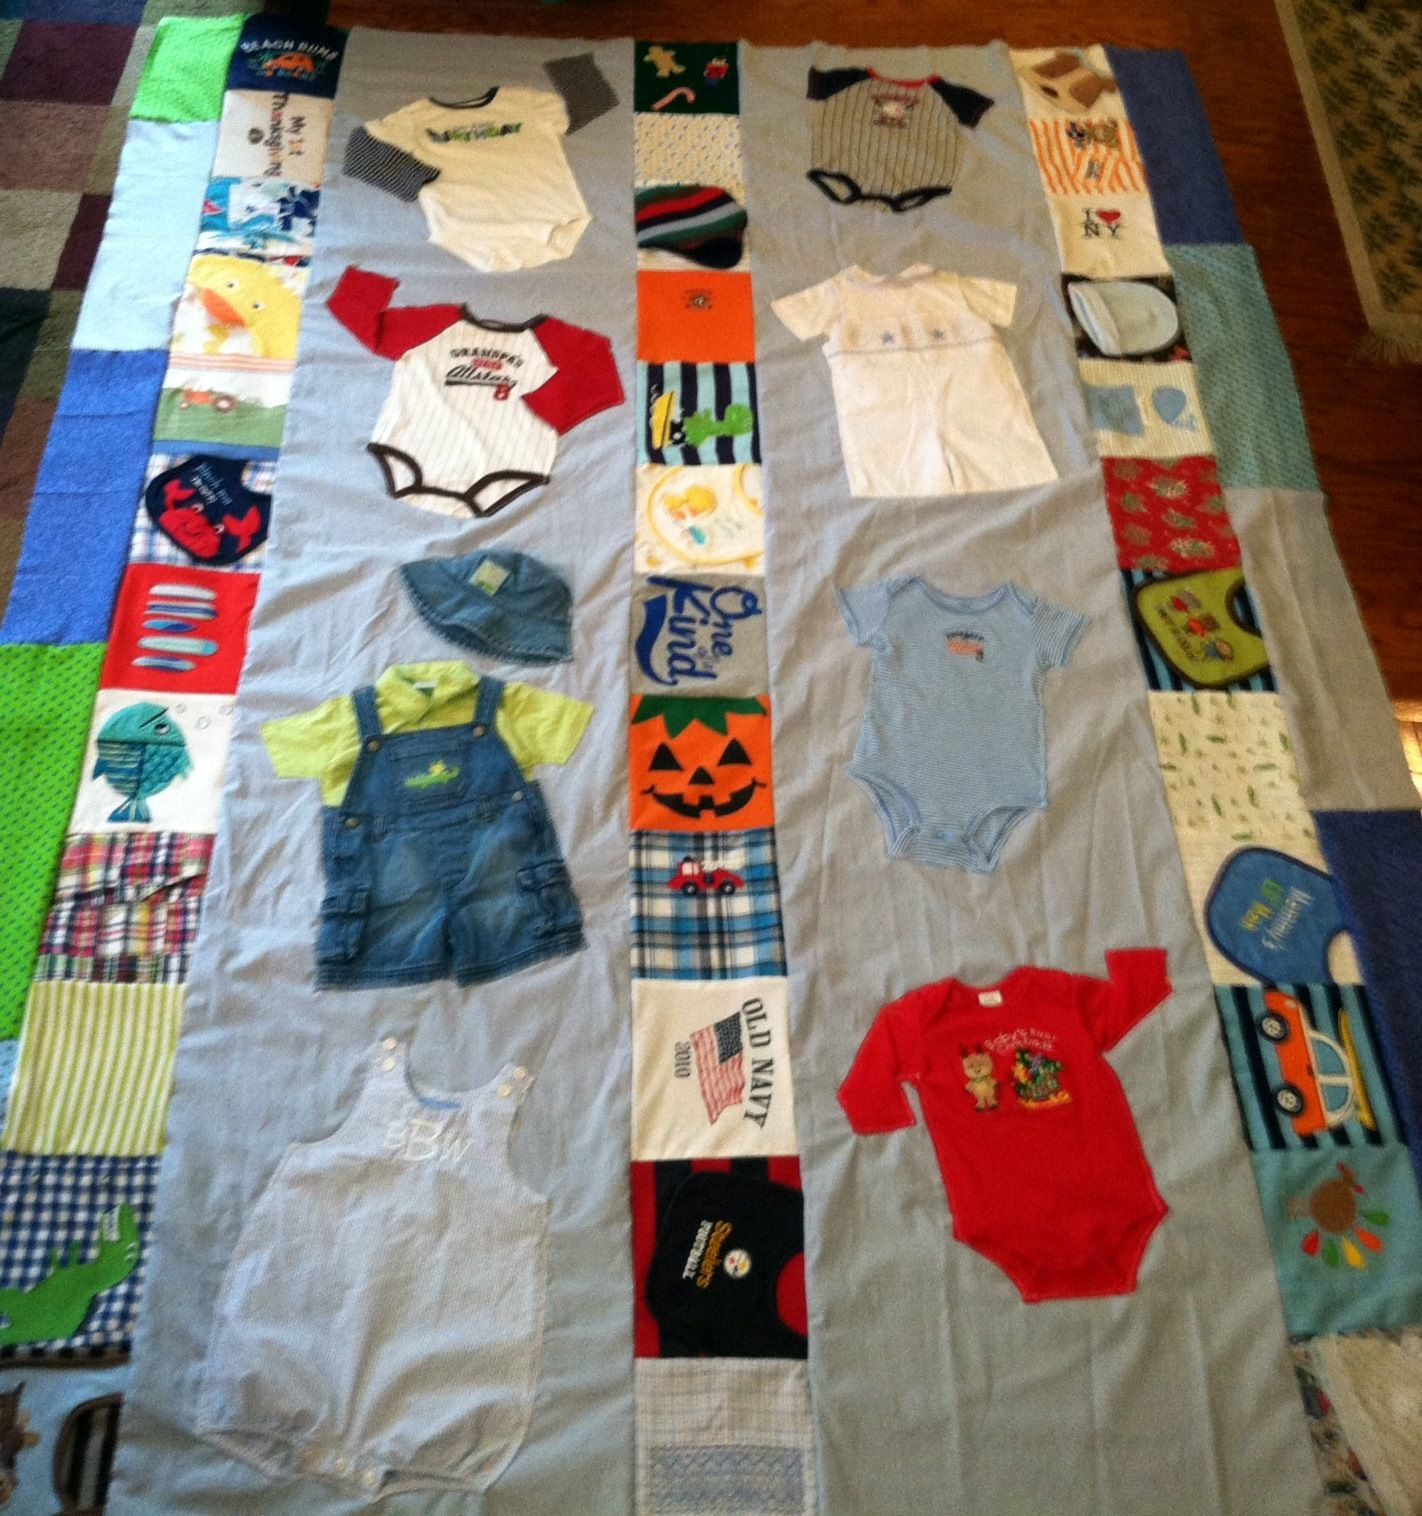 Baby Clothes Quilt (almost complete!) | Things I've Made ... : quilt from baby clothes - Adamdwight.com